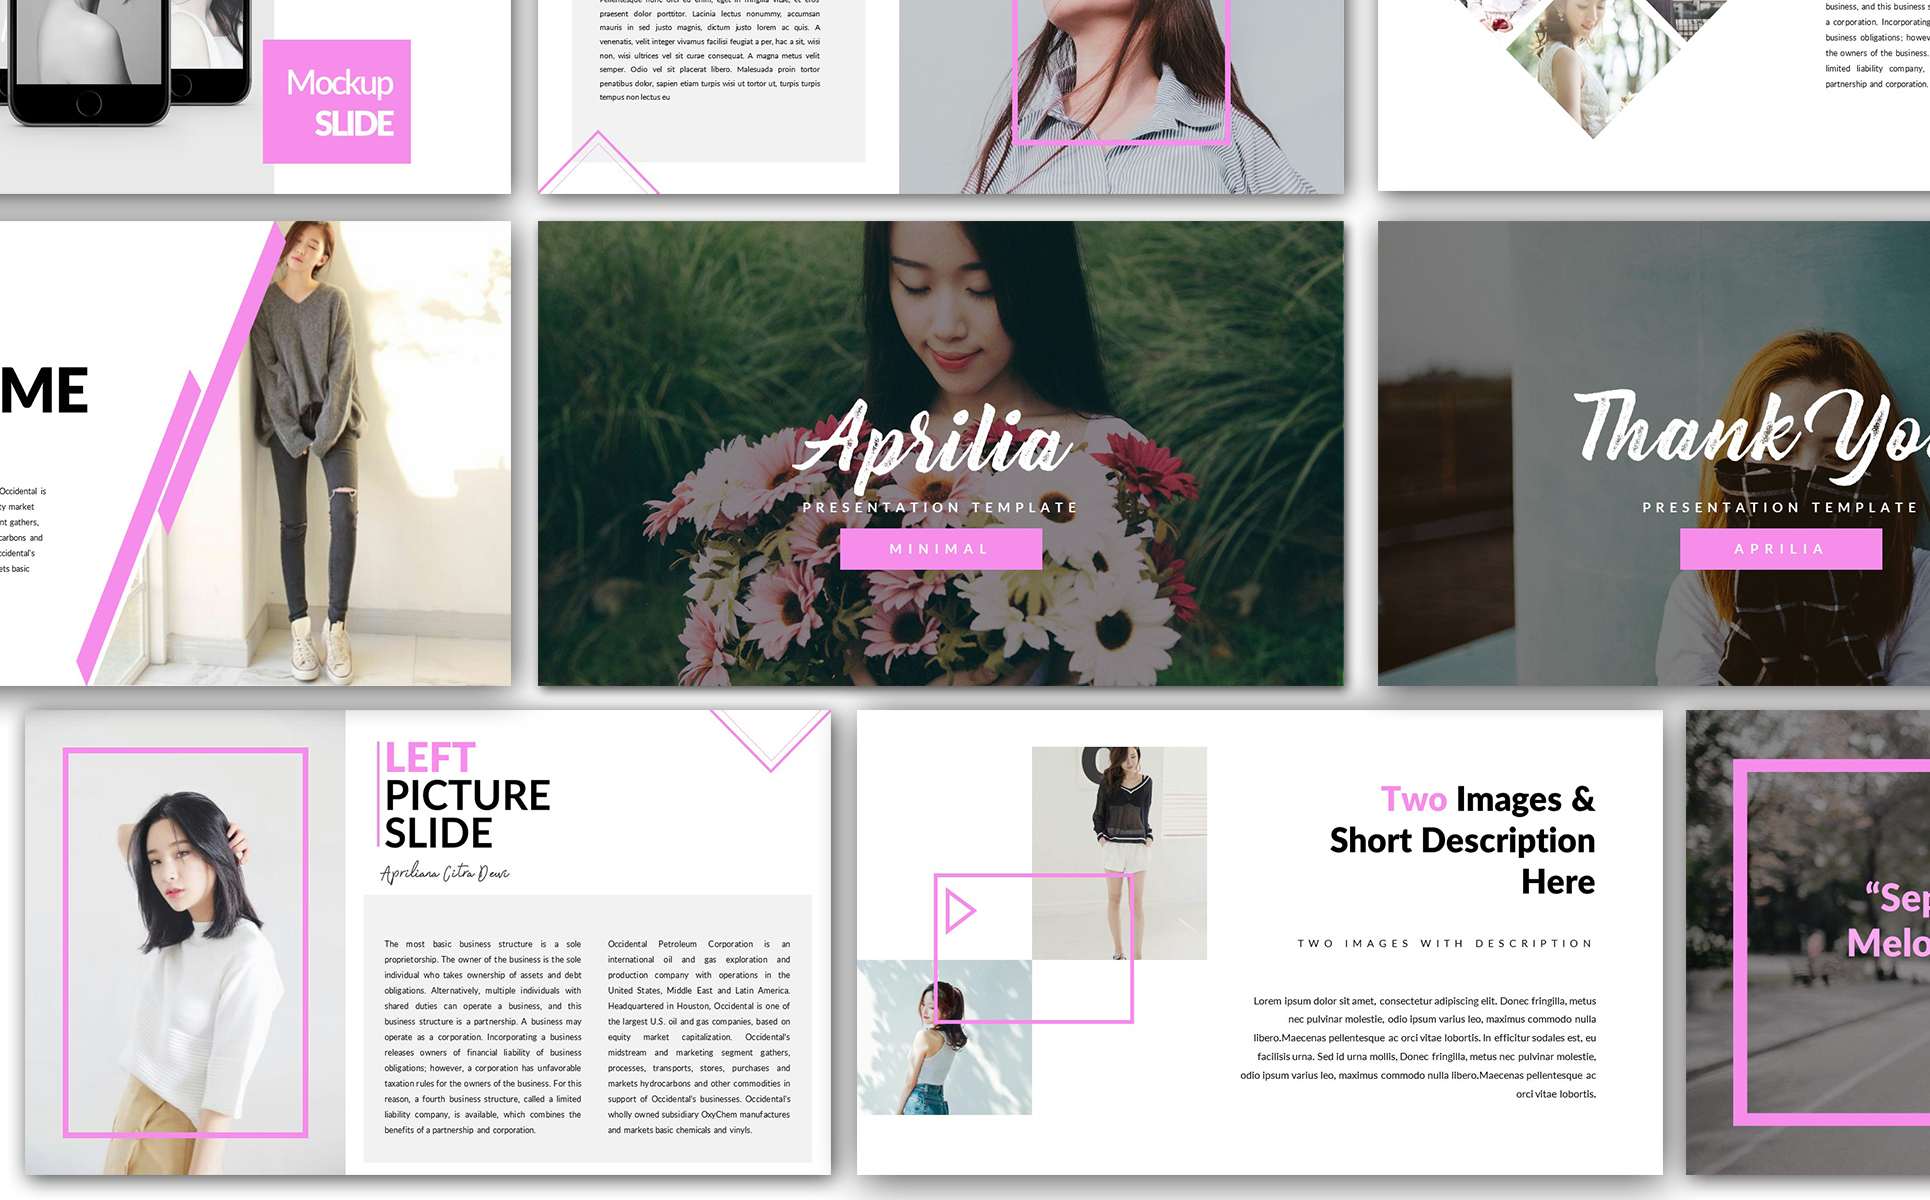 keynote brochure template - aprilia creative keynote template 65978